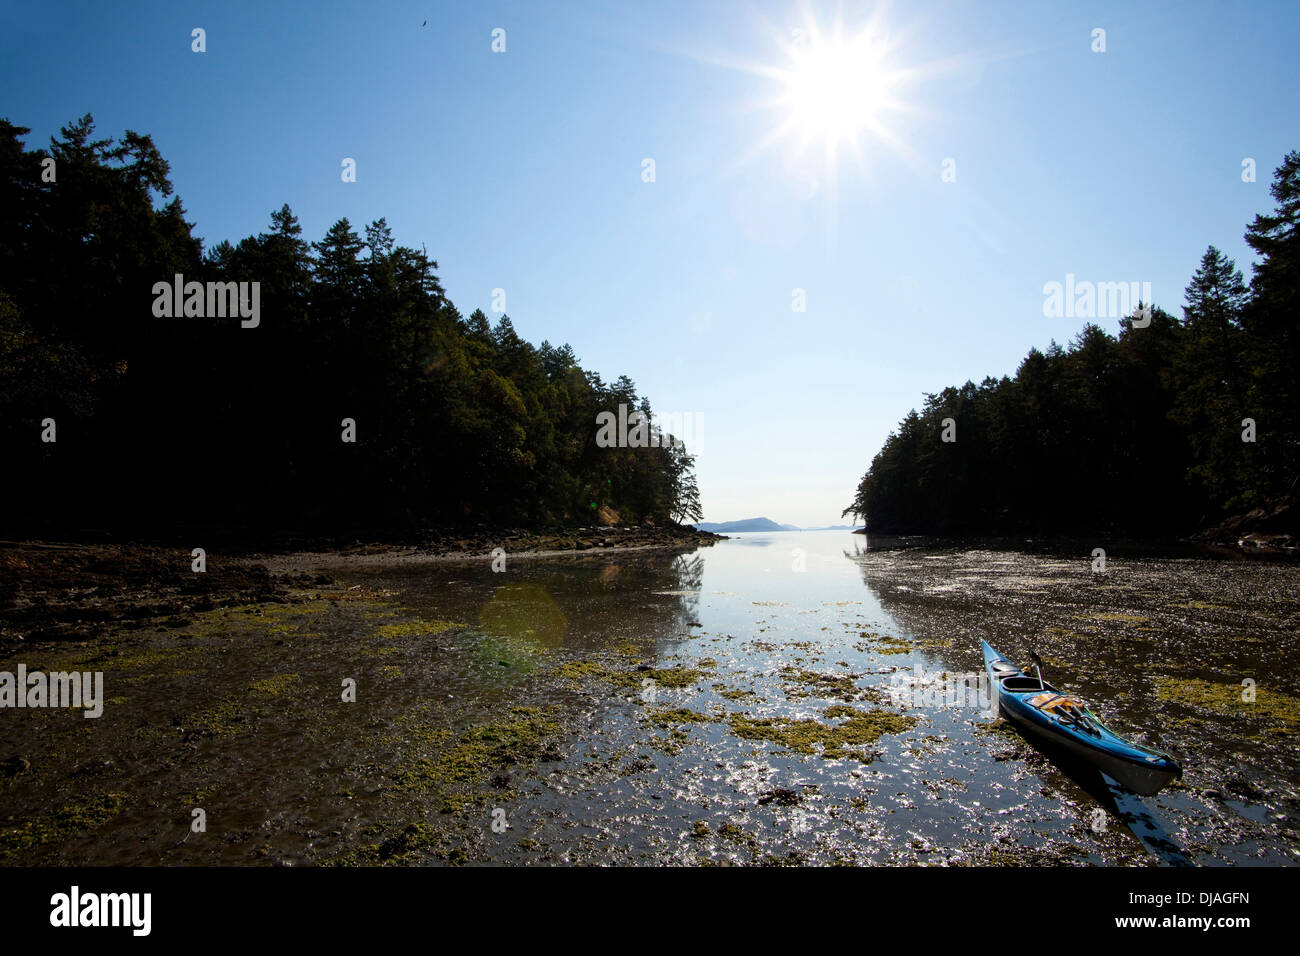 Boat mooring in murky water, Gulf Islands, British Columbia, Canada - Stock Image